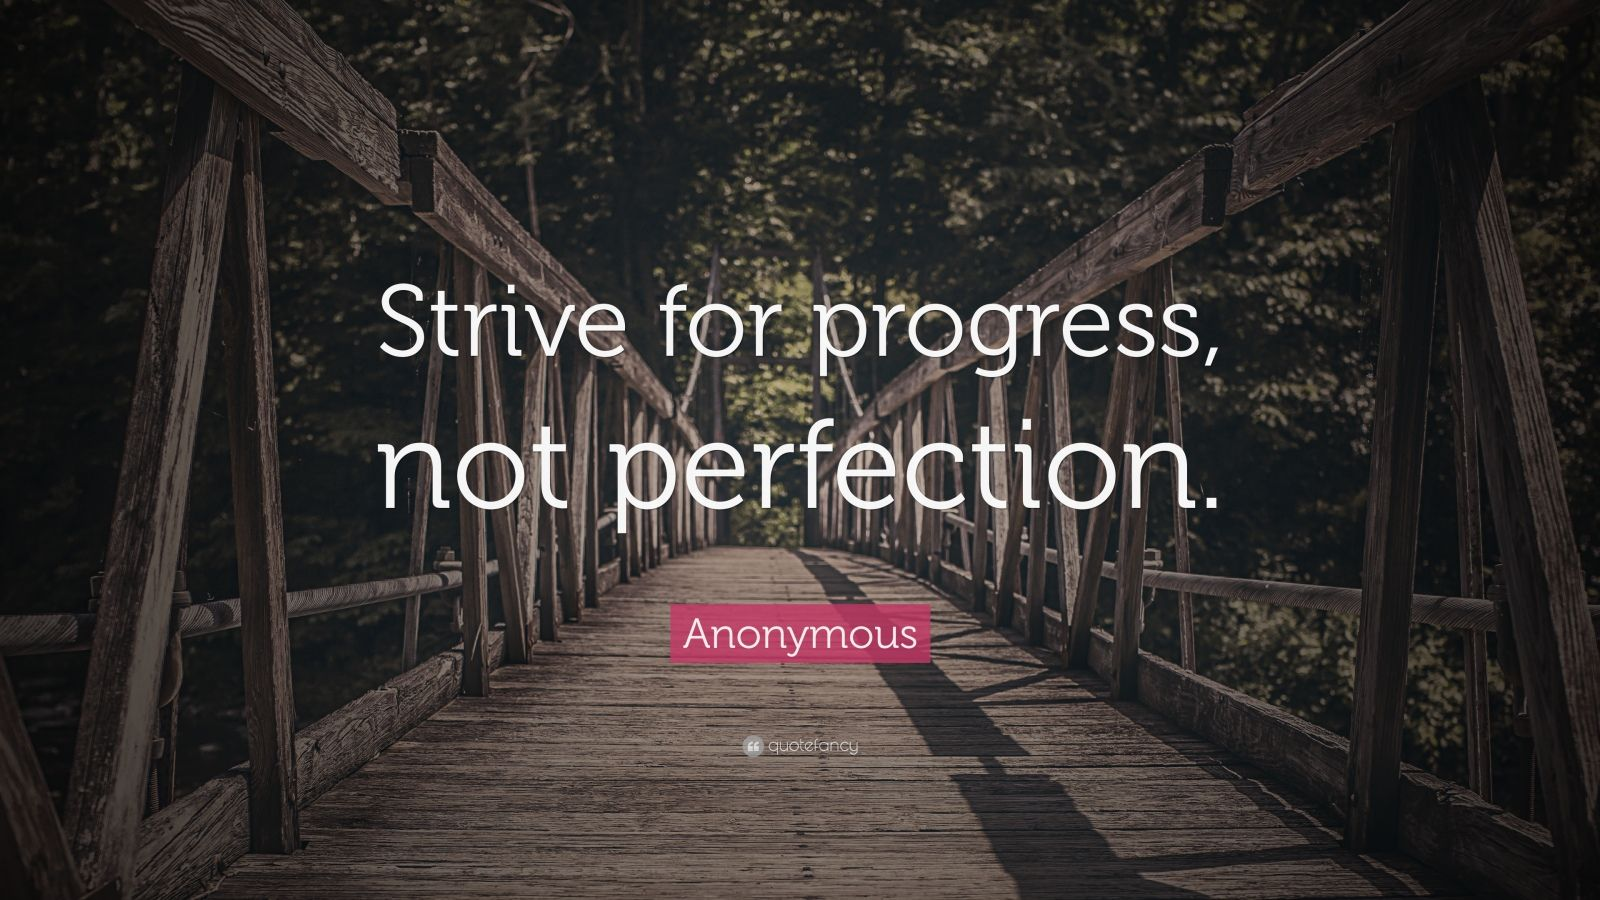 Motivational Life Quotes Wallpapers Anonymous Quote Strive For Progress Not Perfection